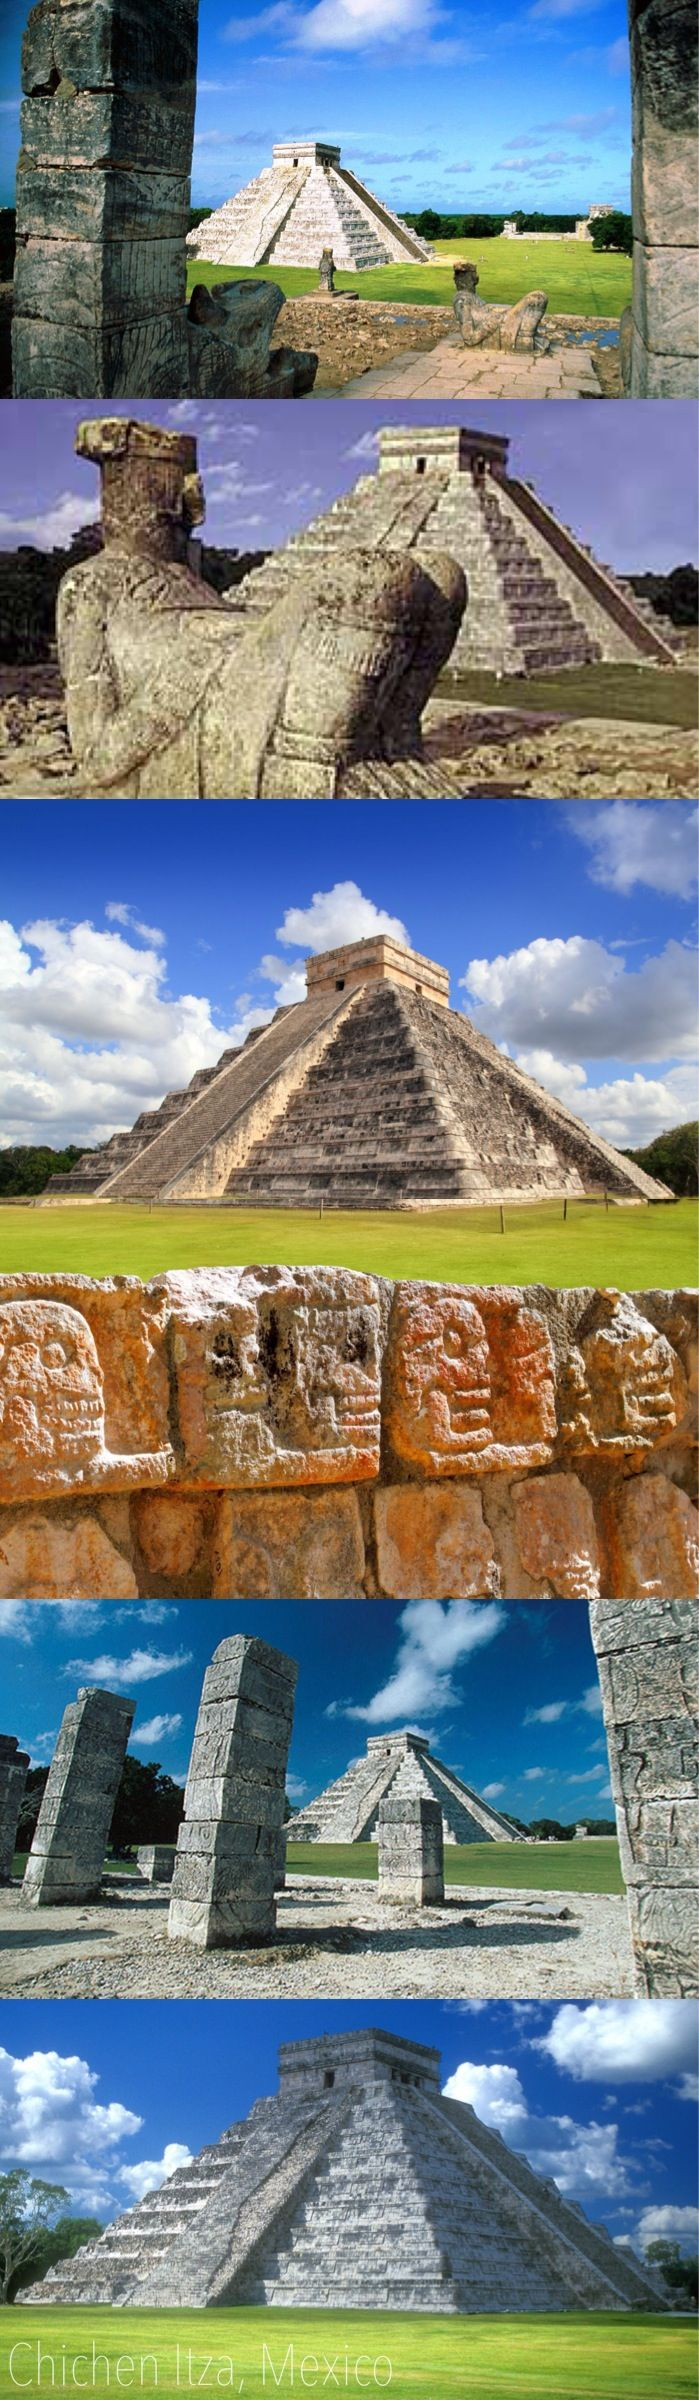 One of the wonders of the world...Mexico  Chichen Itza, Mexico